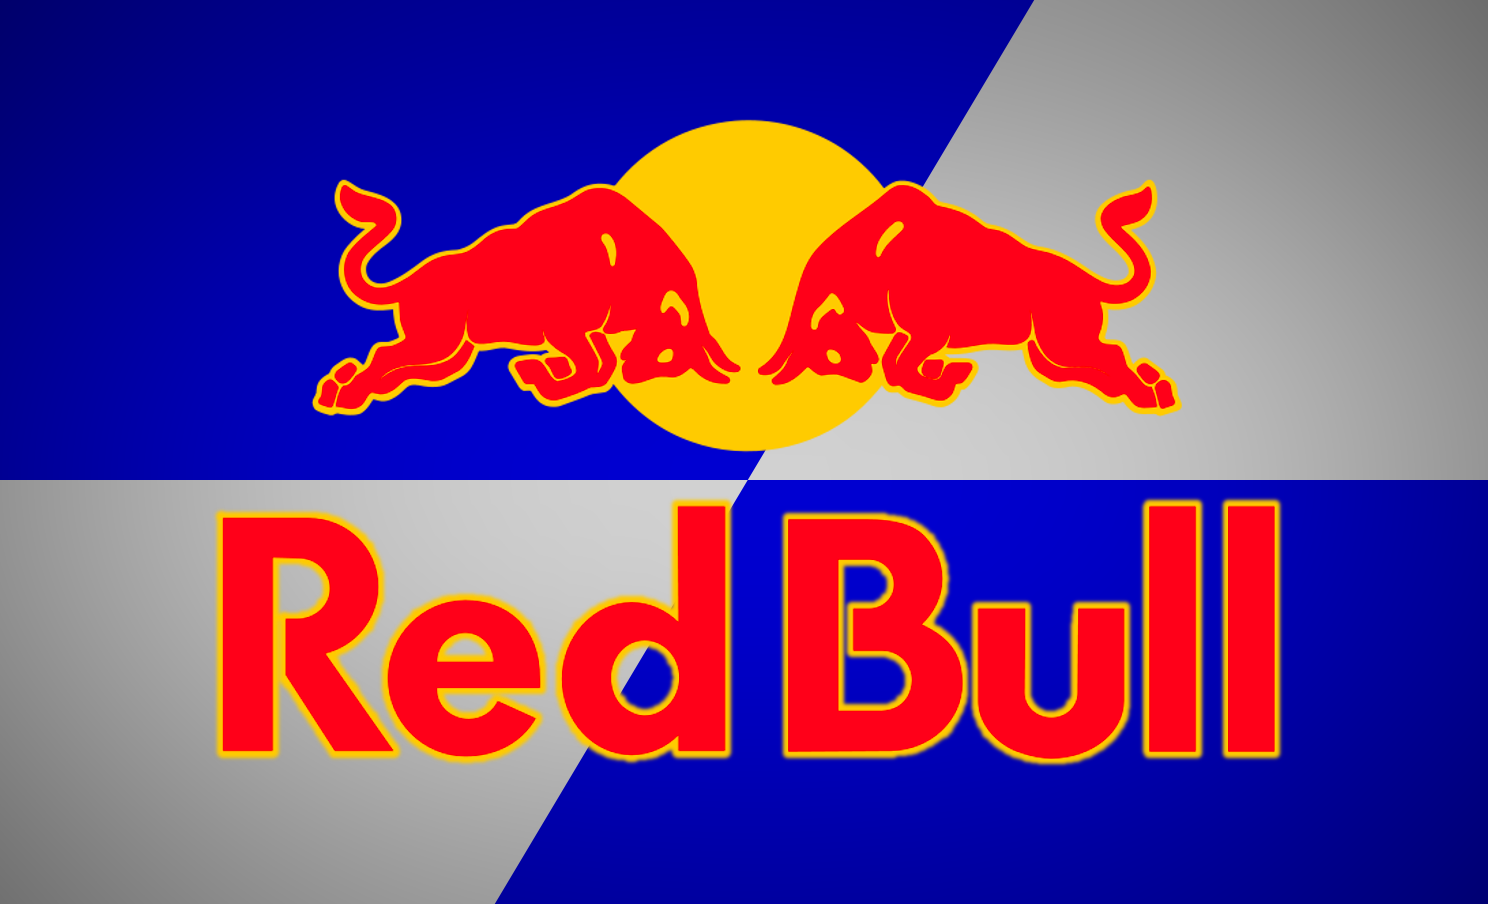 logo red bull dfe62